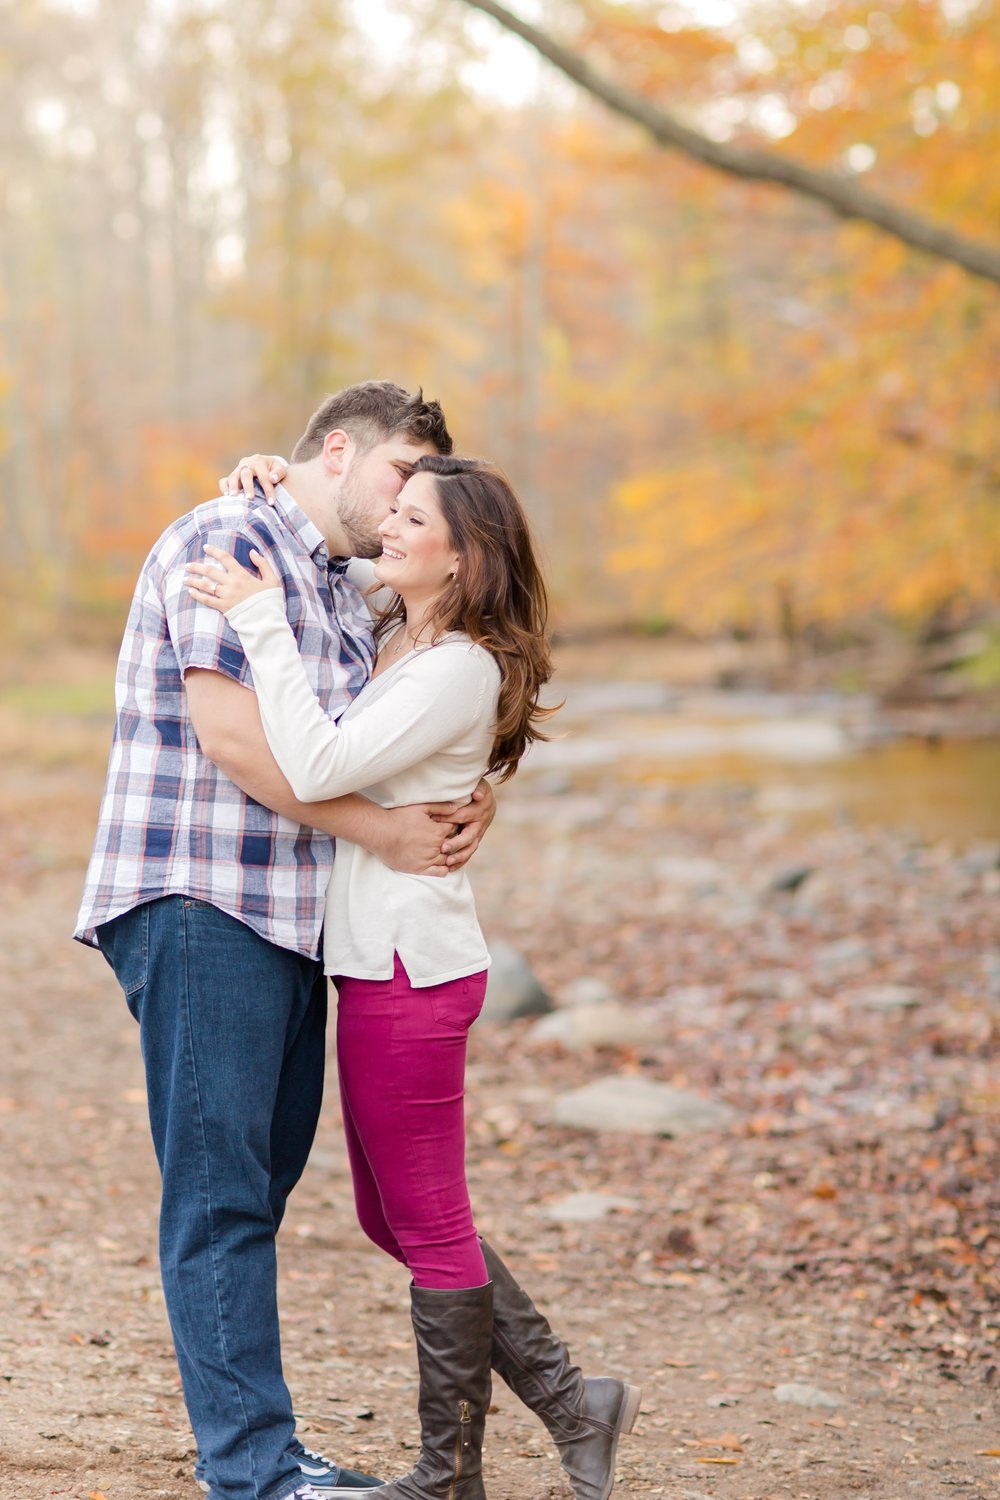 Rebecca & Greg Engagement-200_anna grace photography baltimore maryland engagement photographer jerusalem mill engagementphoto.jpg